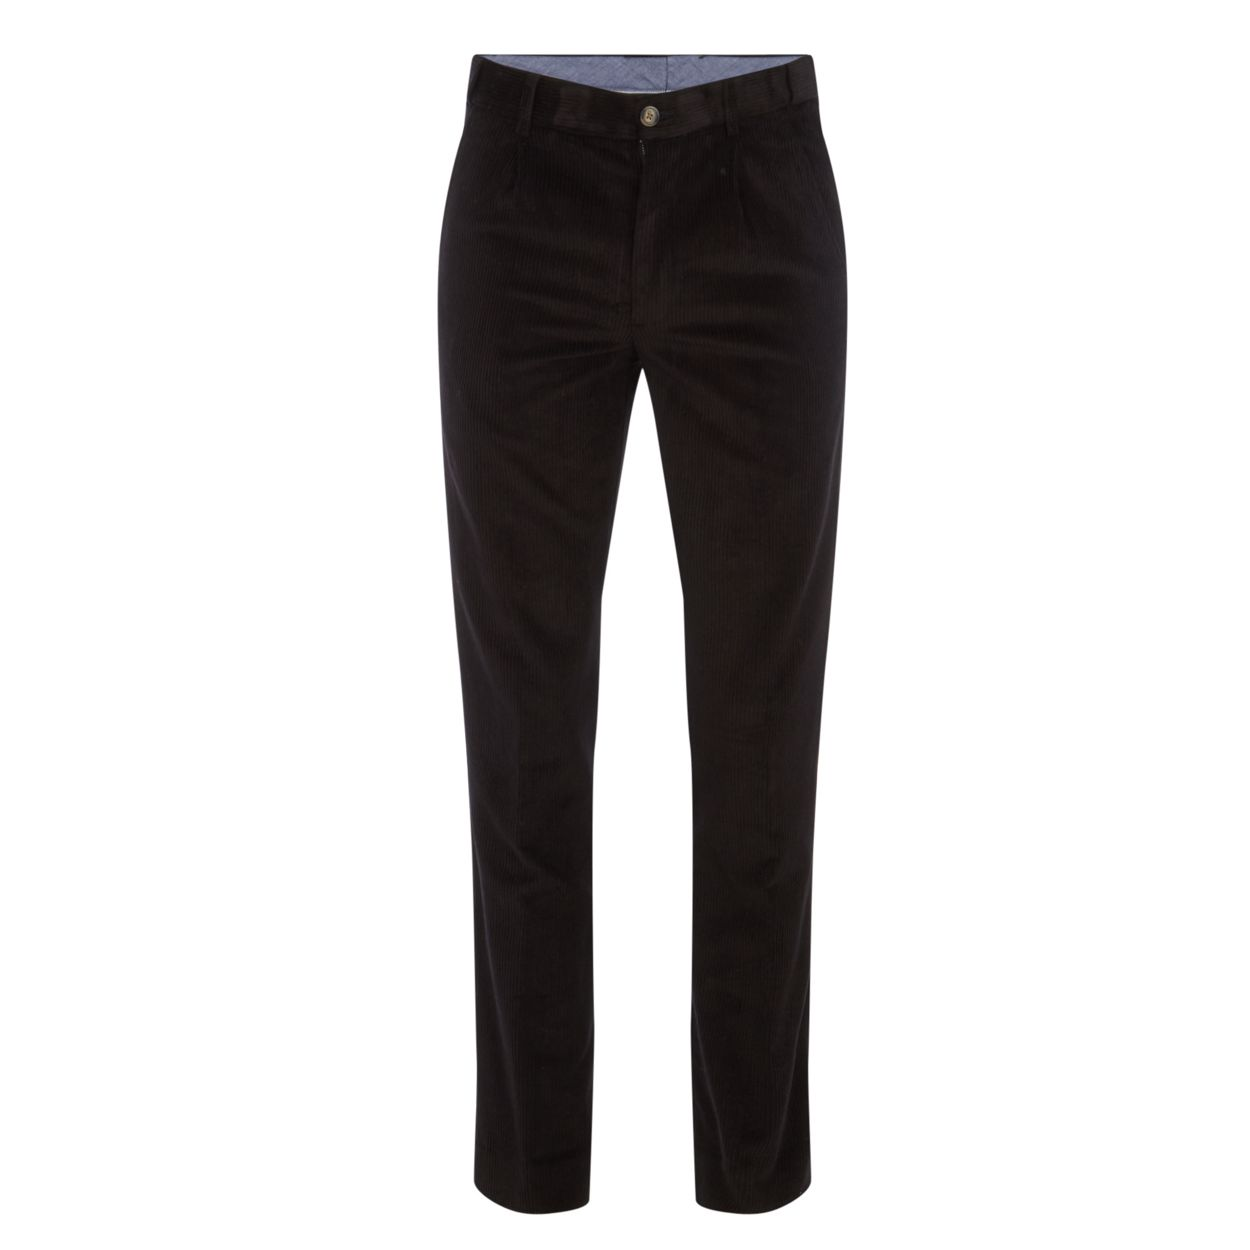 Maine New England Black cord trousers